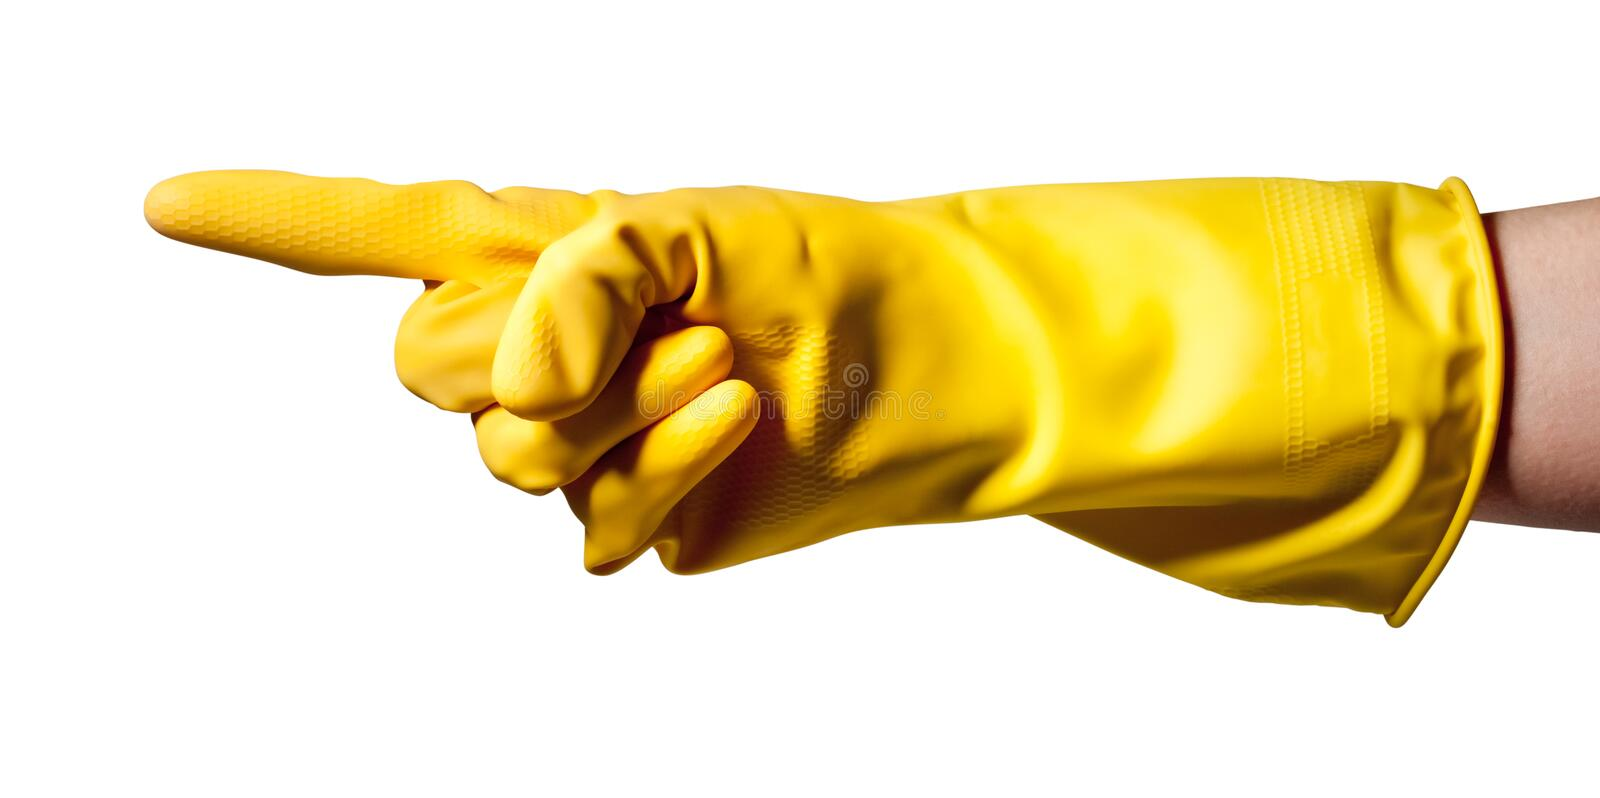 Download Pointing Hand Wearing Rubber Glove Royalty Free Stock Photo - Image: 20473445